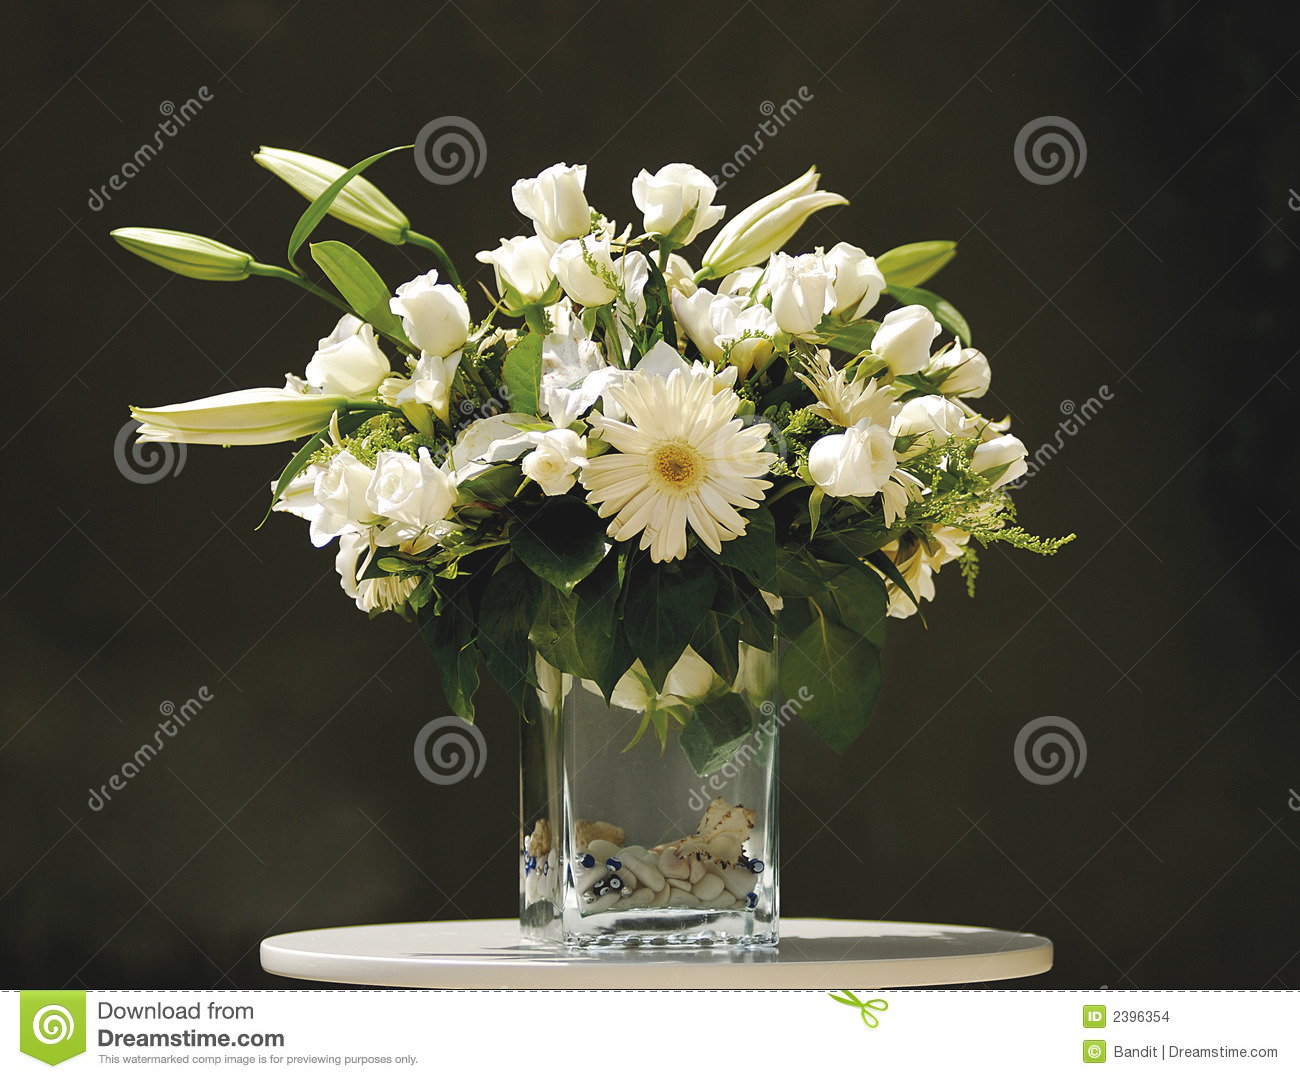 bouquet de fleur blanche dans le vase images stock image 2396354. Black Bedroom Furniture Sets. Home Design Ideas